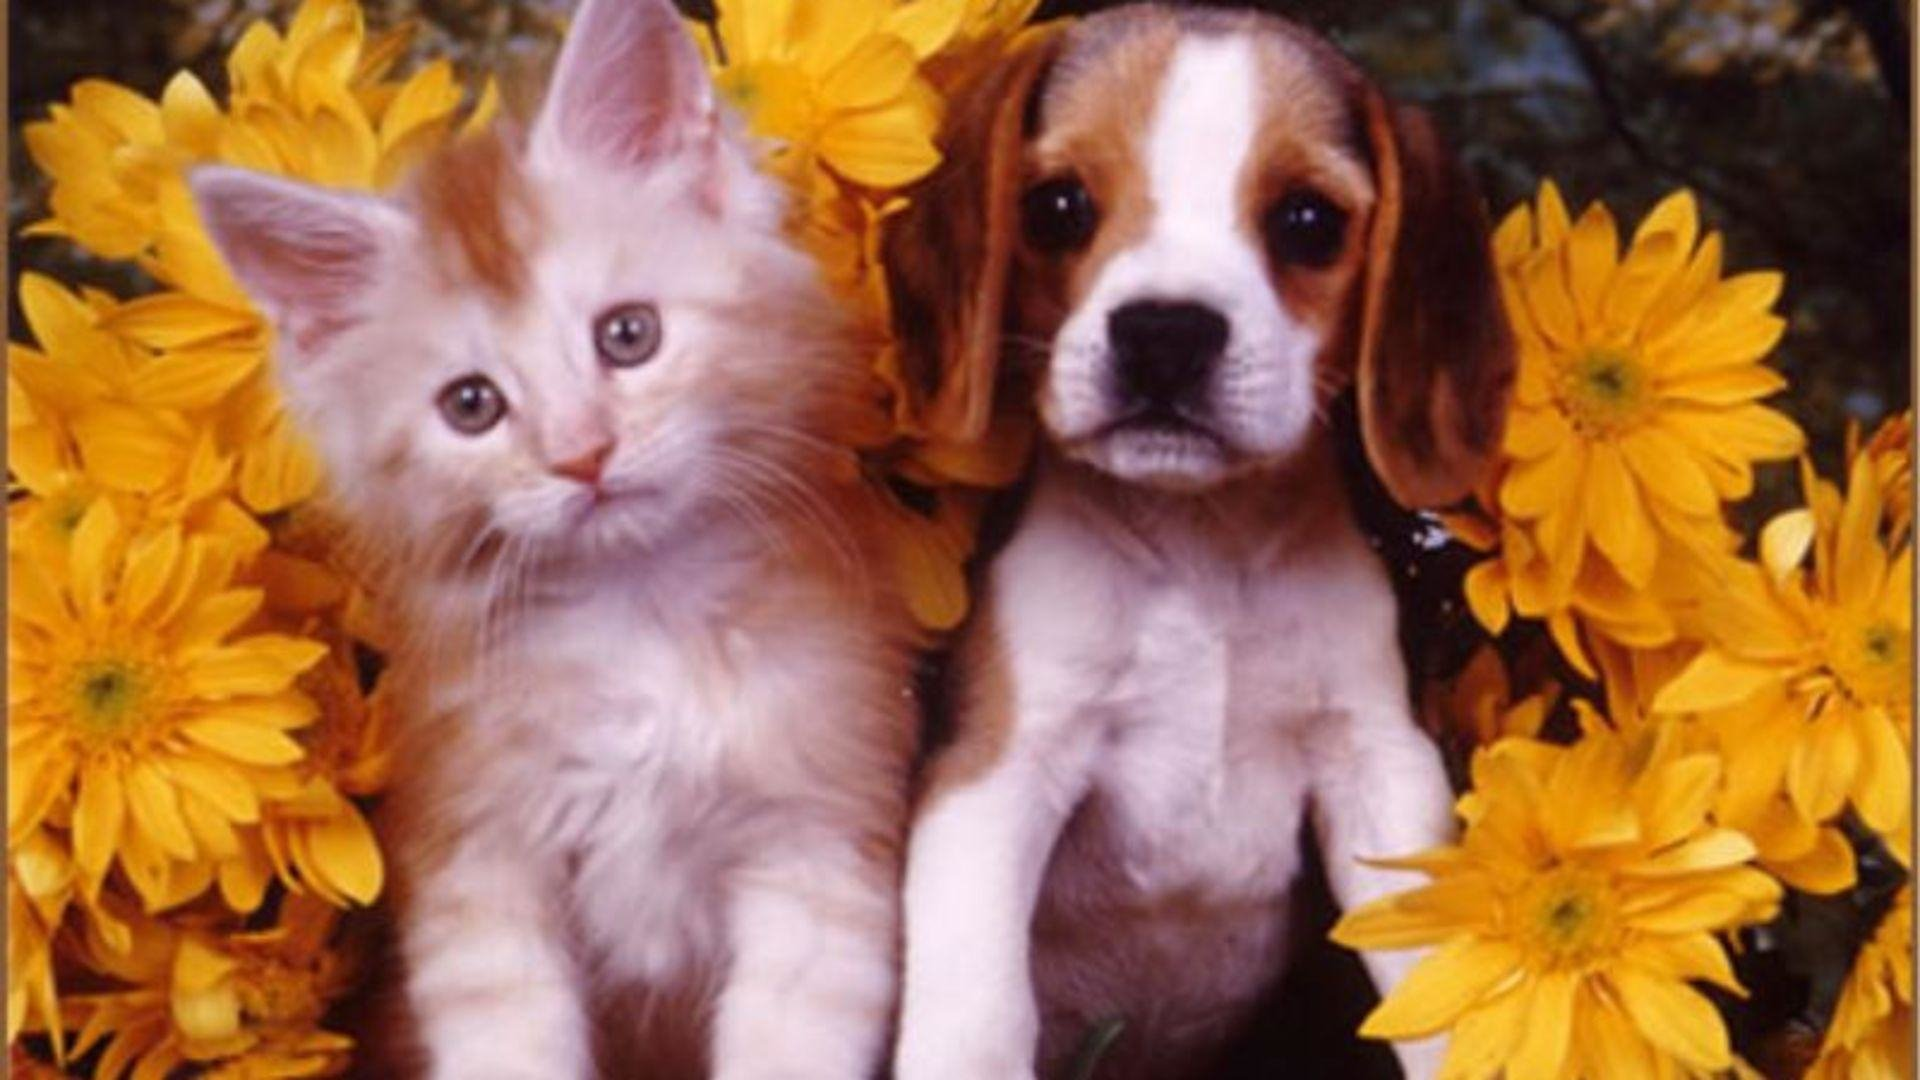 Adorable Kitten And Puppy HD Wallpaper